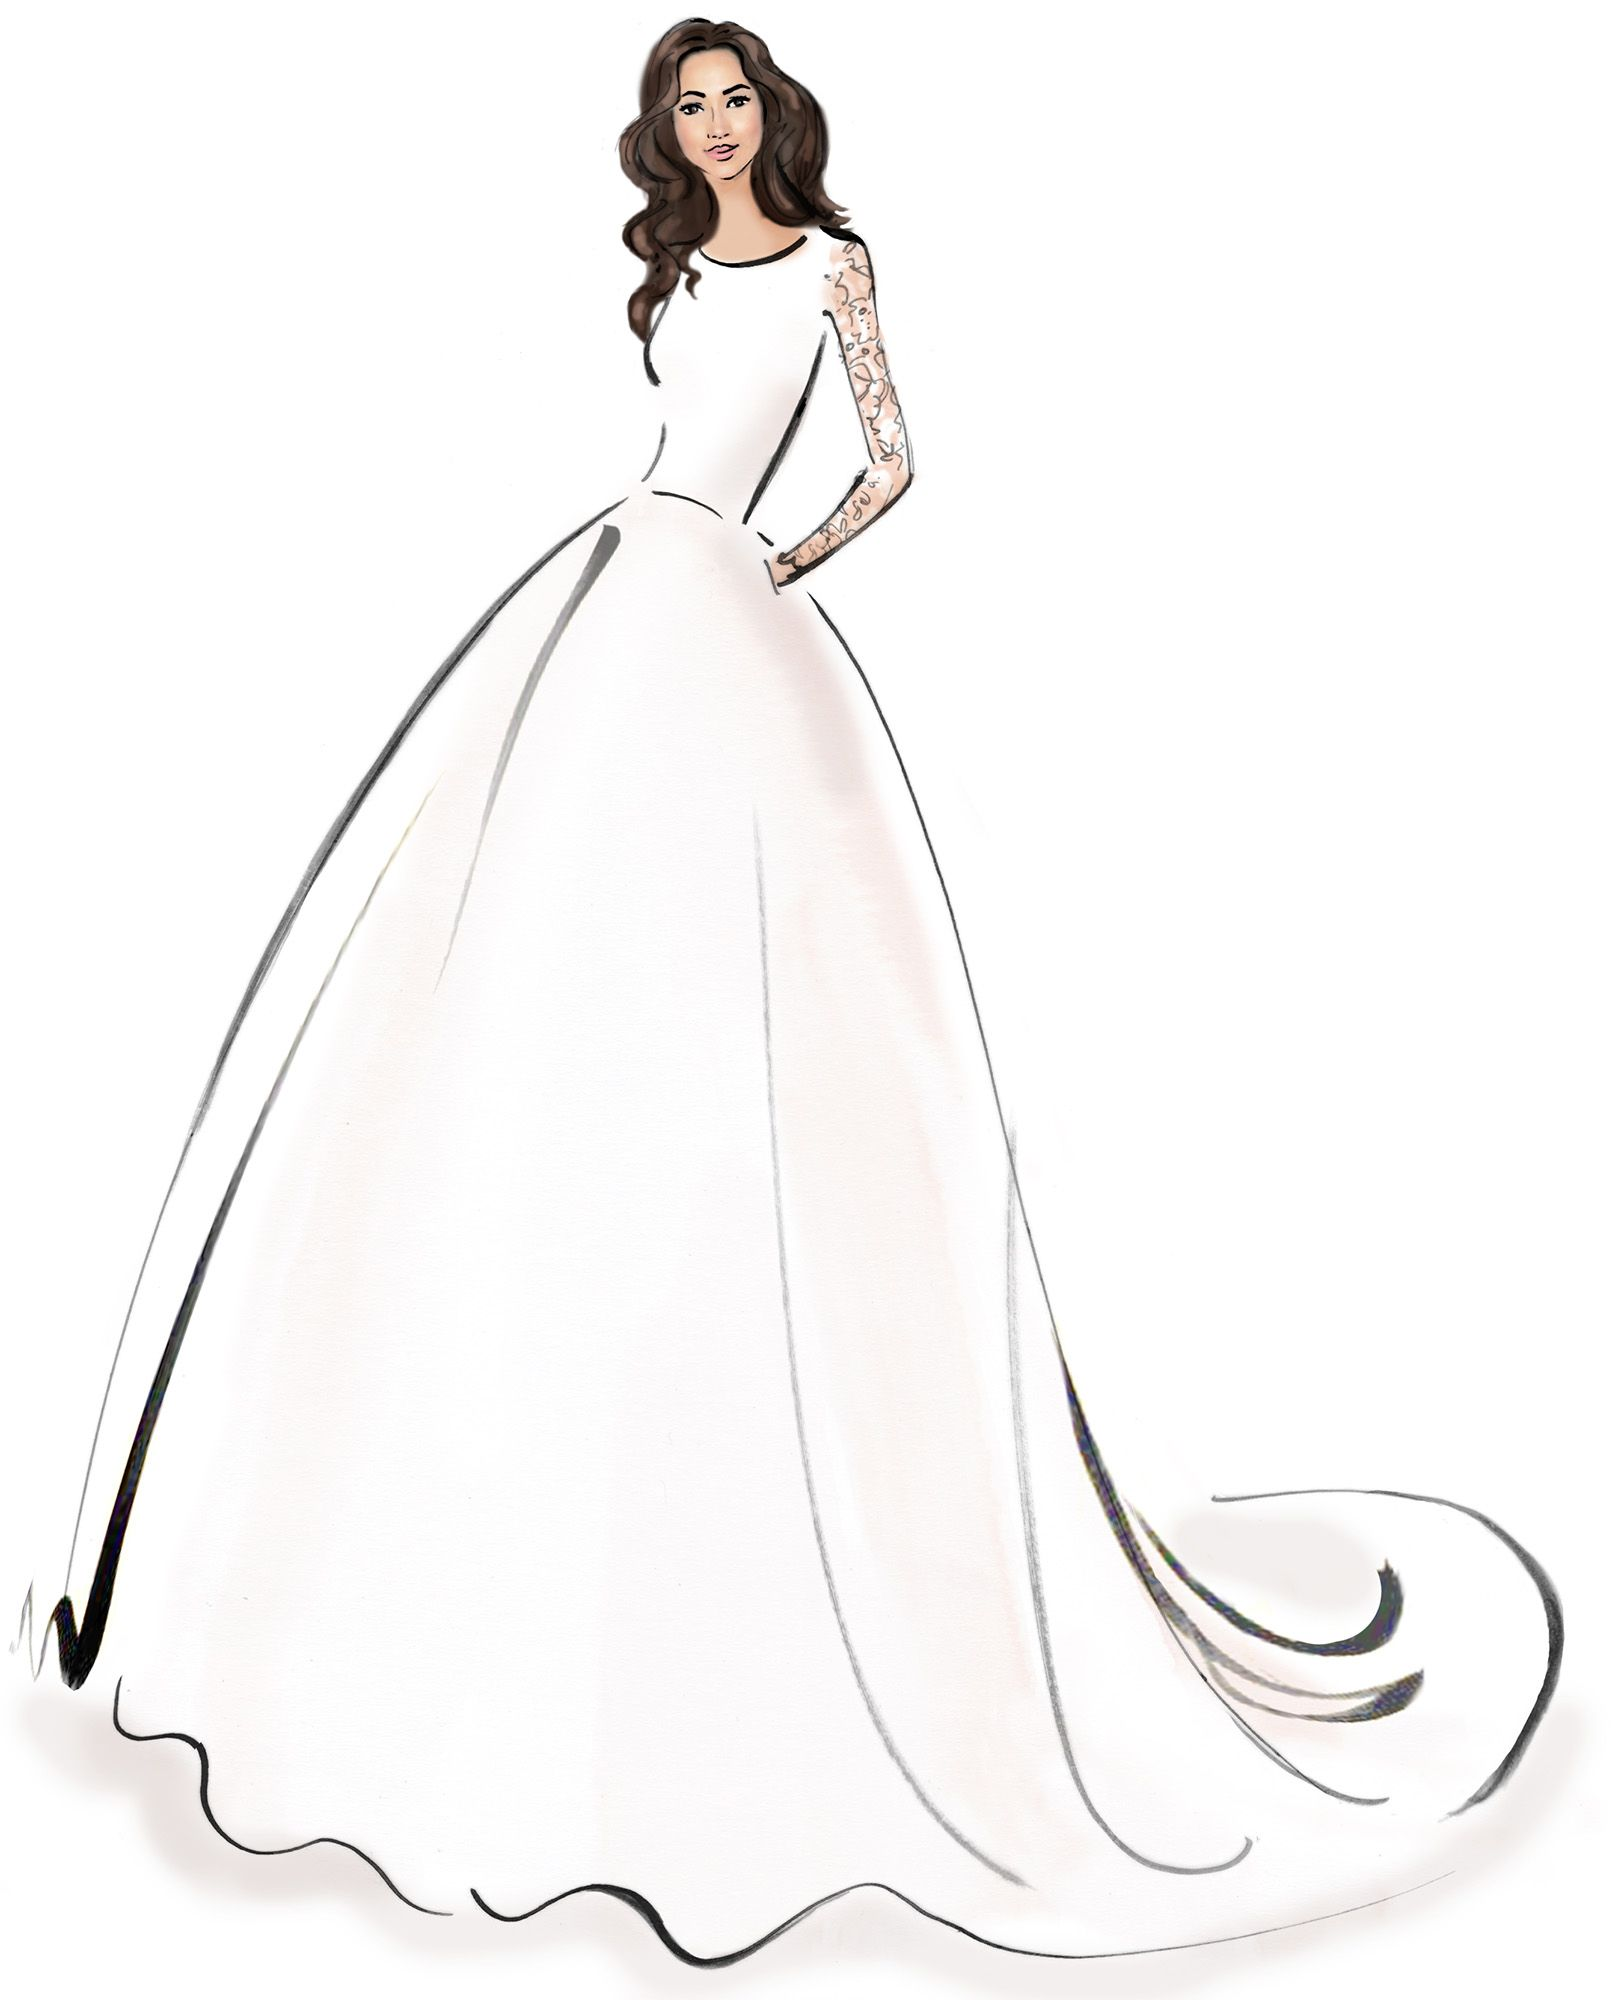 Dreaming about wearing a wedding dress  Events by Gia says hereus a sketch of a possible Wedding Dream Dress